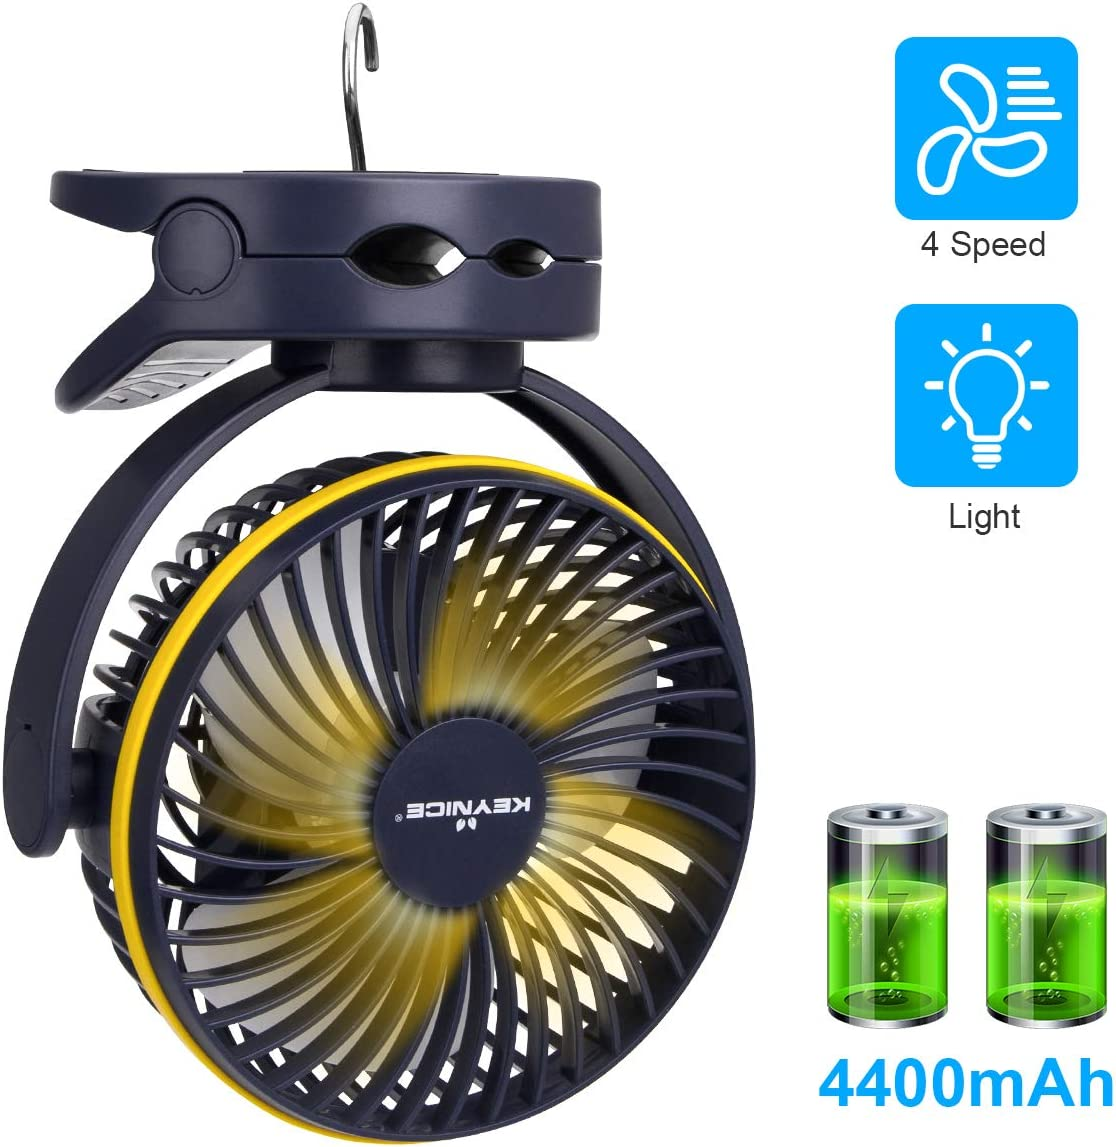 KEYNICE Clip Fan with Night Light, USB Desk Fan with Rechargeable Battery, 4 Speeds Battery Operated Fan, Outdoor Camping Hanging Fan, Hurricane Emergency, Personal Cooling Fans for Office Home